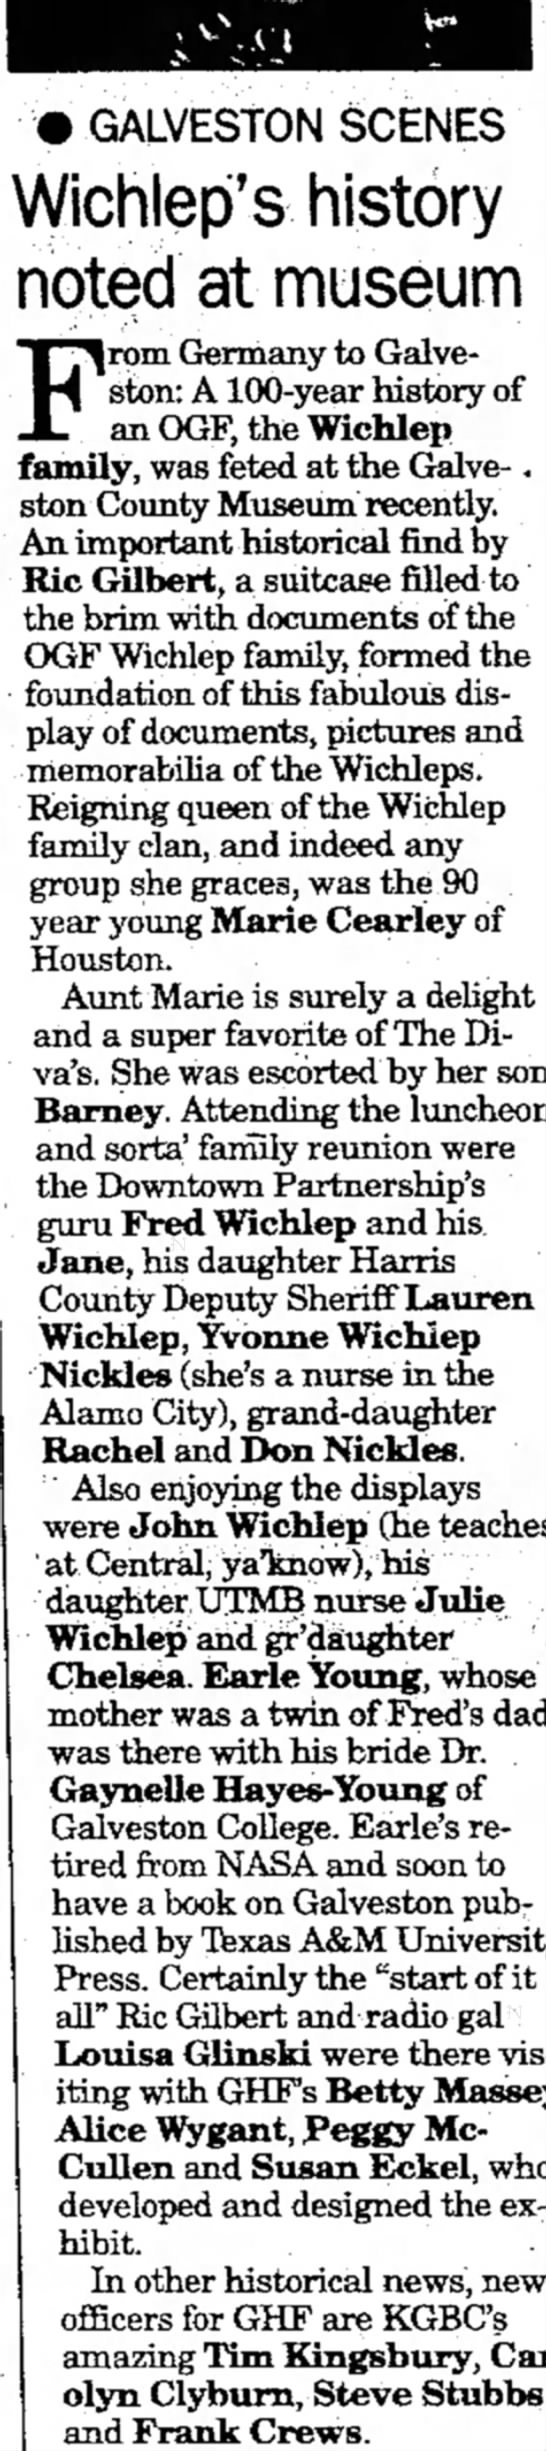 Wichlep family in 20 July 1997 - • GALVESTON SCENES Wichlep's history noted at...